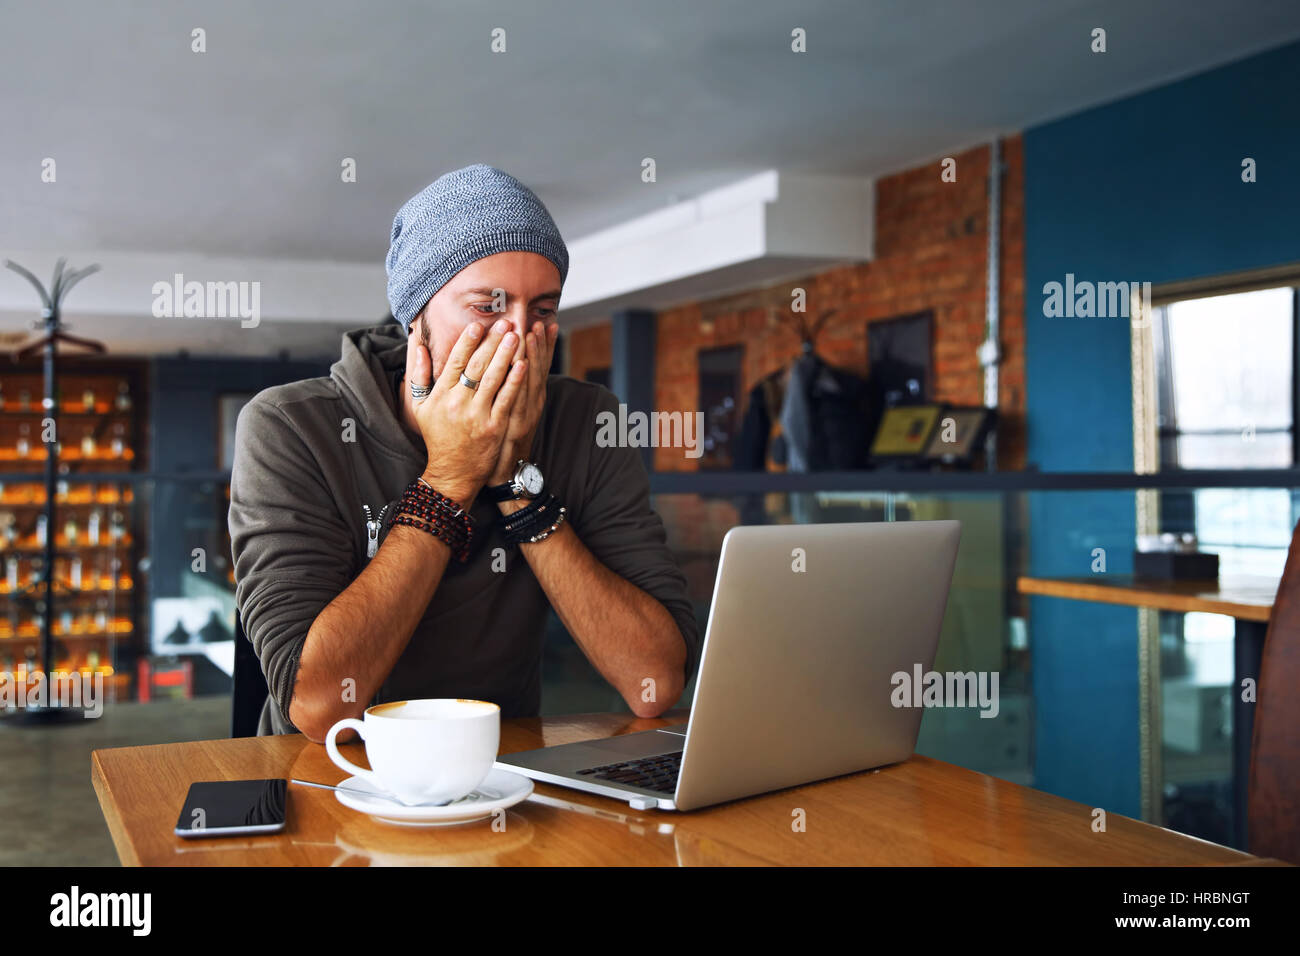 Worried shoked man looking on laptop at cafe - Stock Image